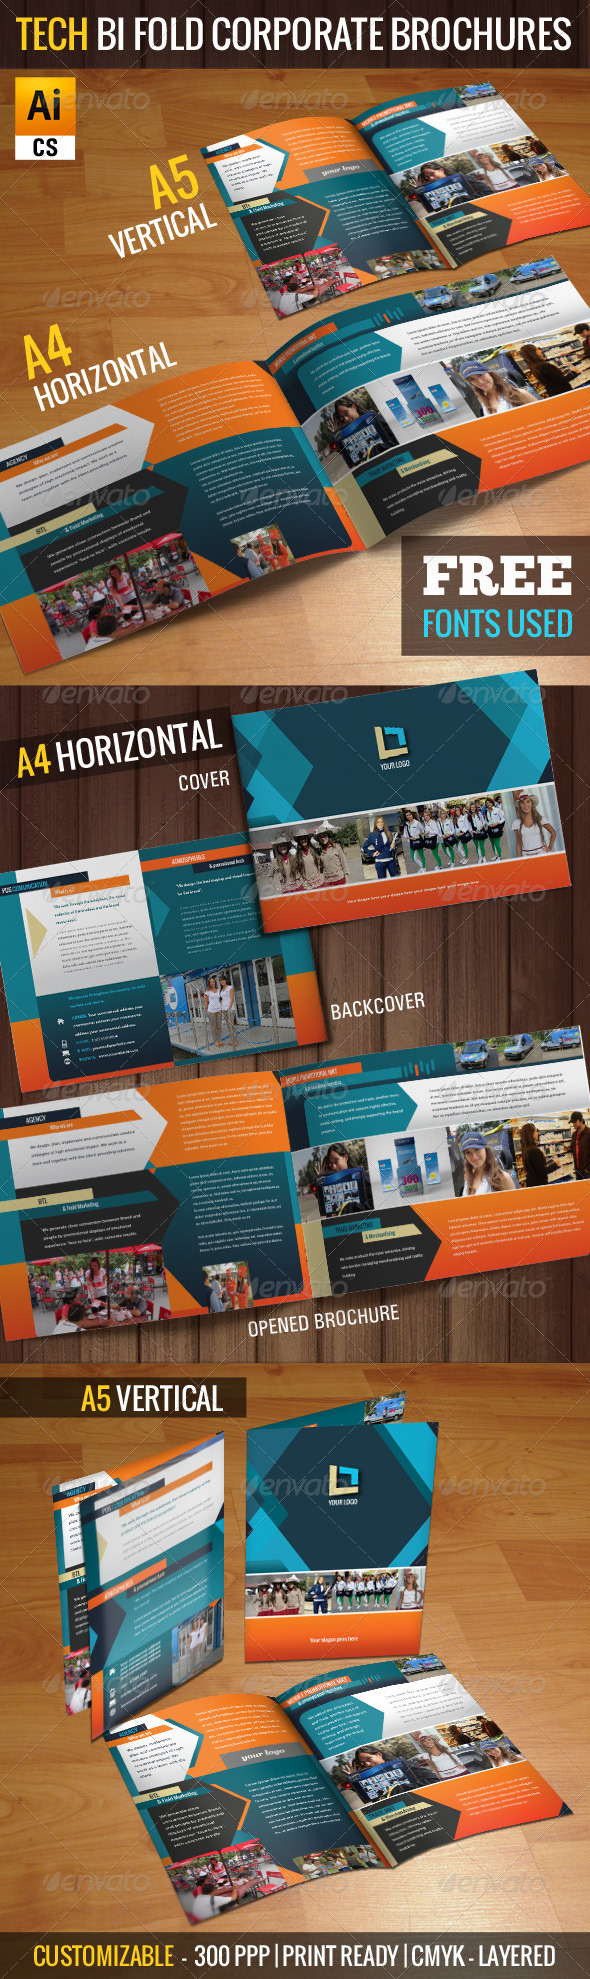 Tech Bi-fold Corporate Brochures - Corporate Brochures